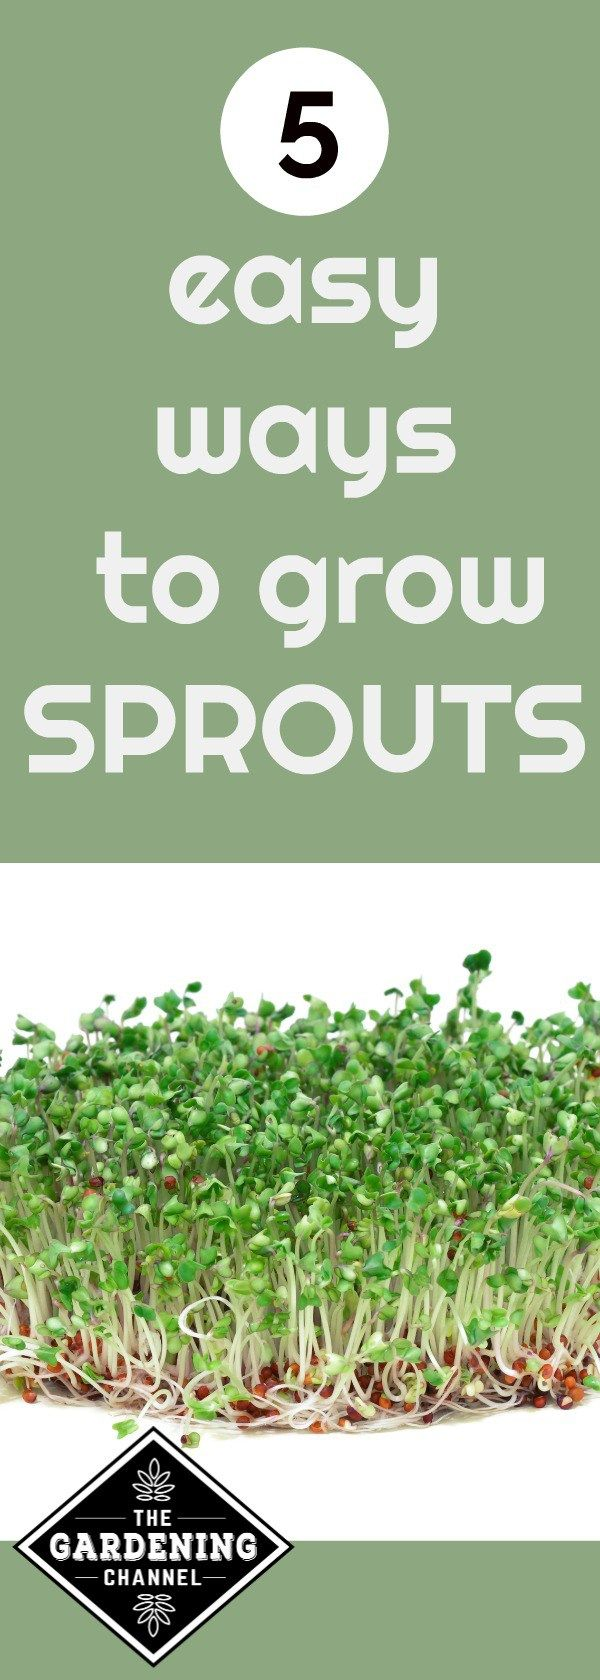 Sprouts are packed with vitamins.  Learn five easy ways to grow sprouts indoors with no special tools.  Try planting these seeds today and enjoy in less than 2 weeks.